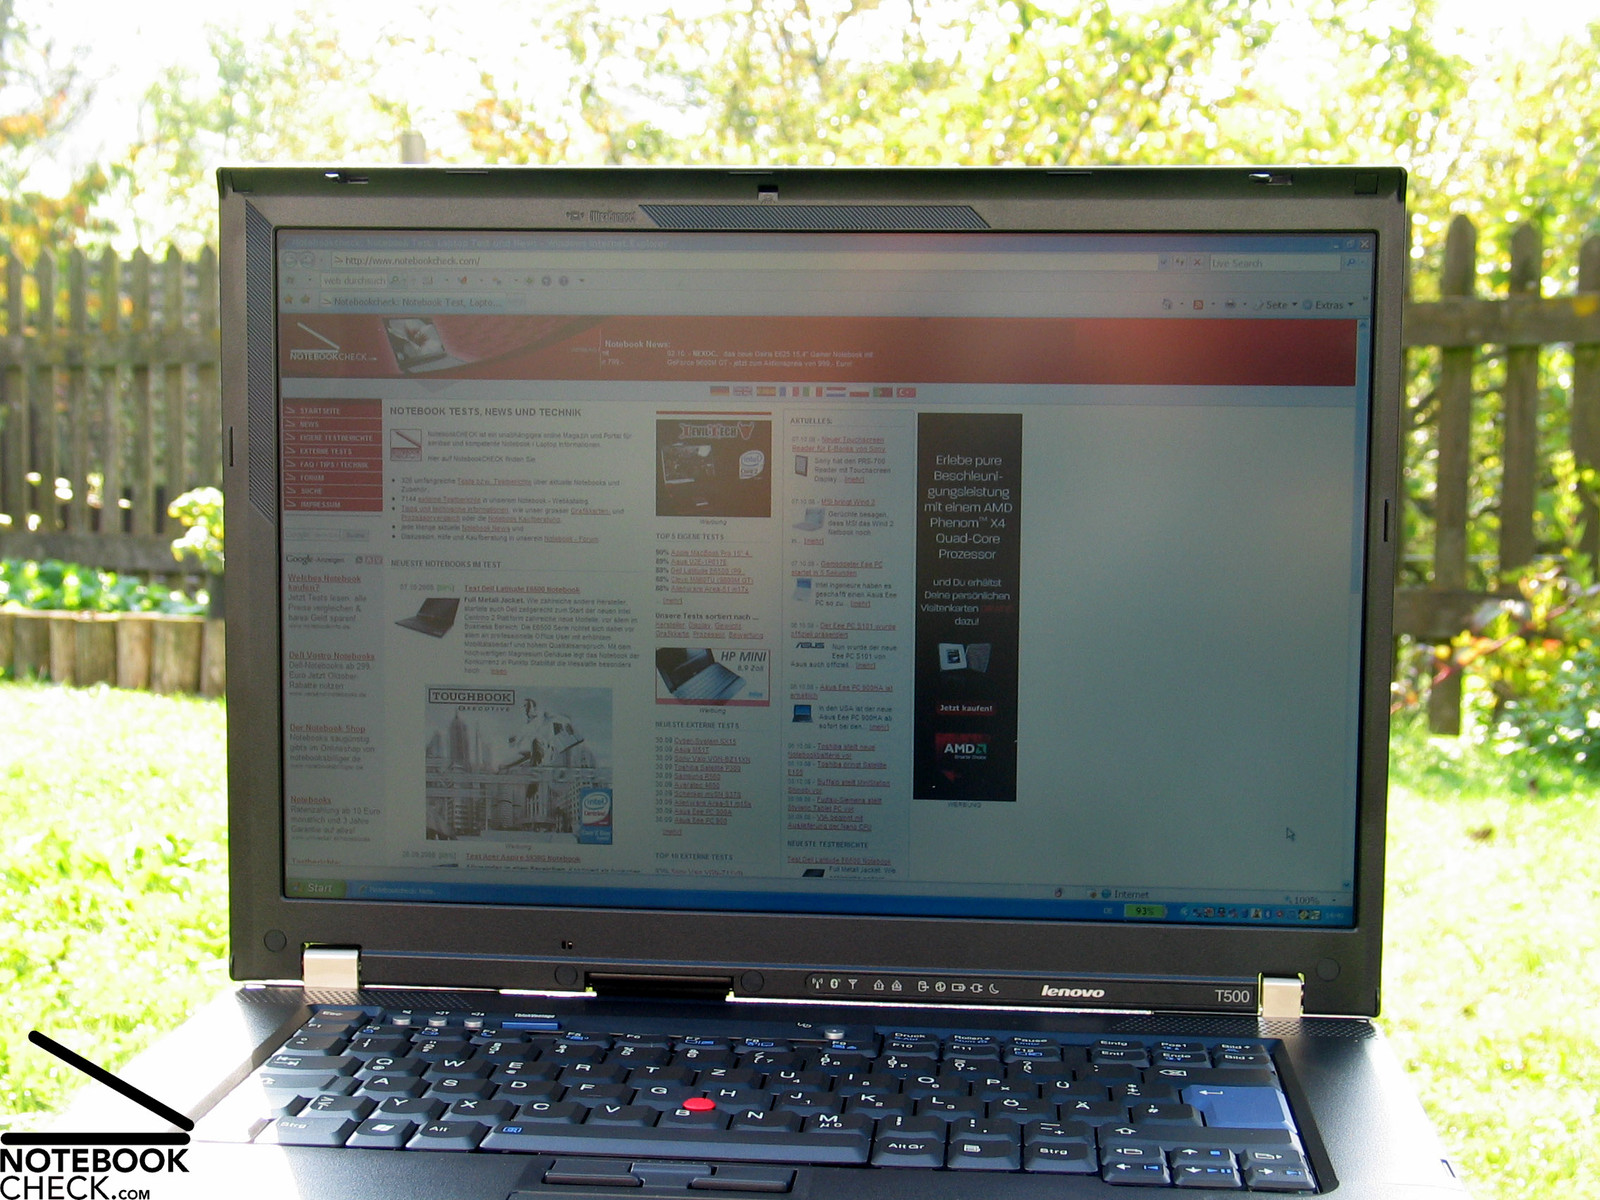 LENOVO THINKPAD T500 AMD GRAPHICS WINDOWS 7 64BIT DRIVER